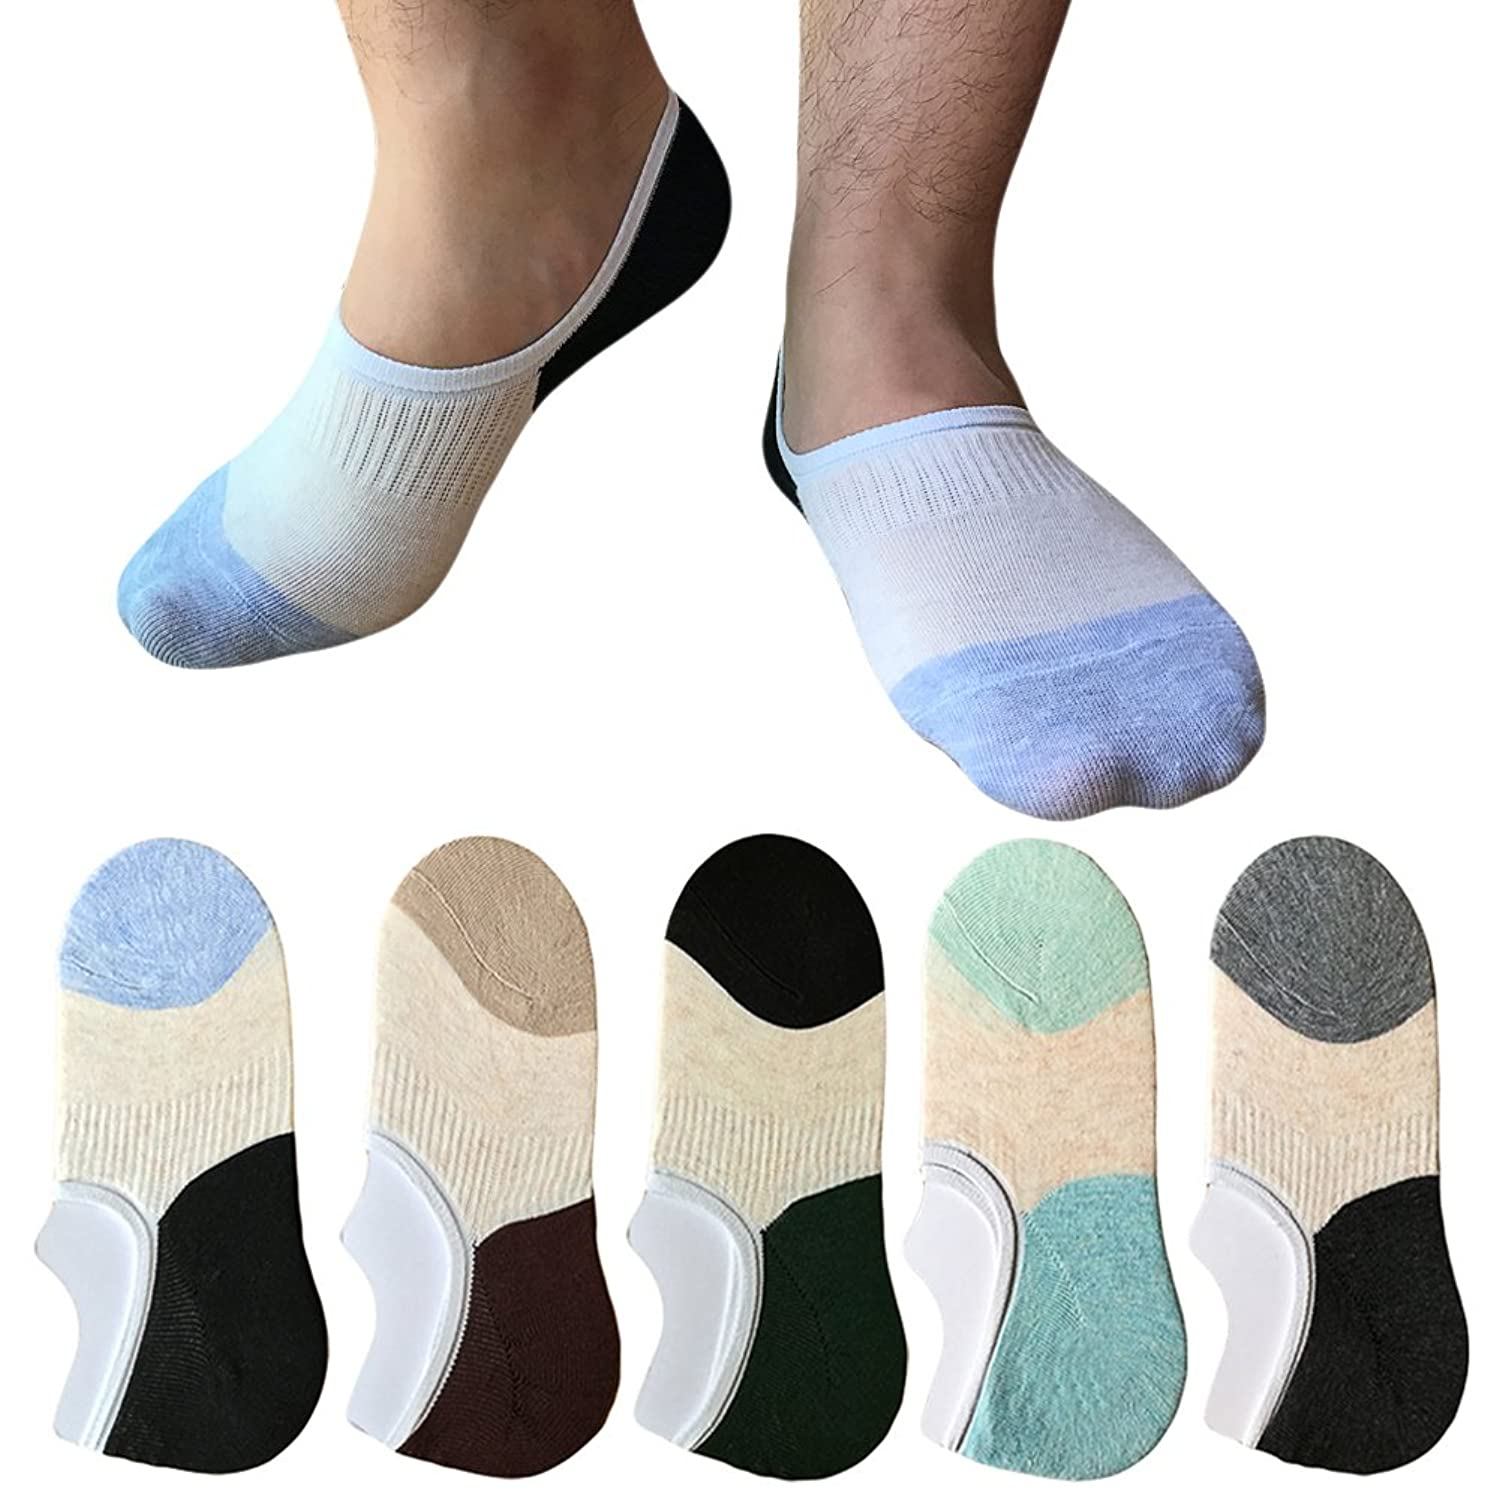 Mens No Show Socks 5 Pack $3.9...